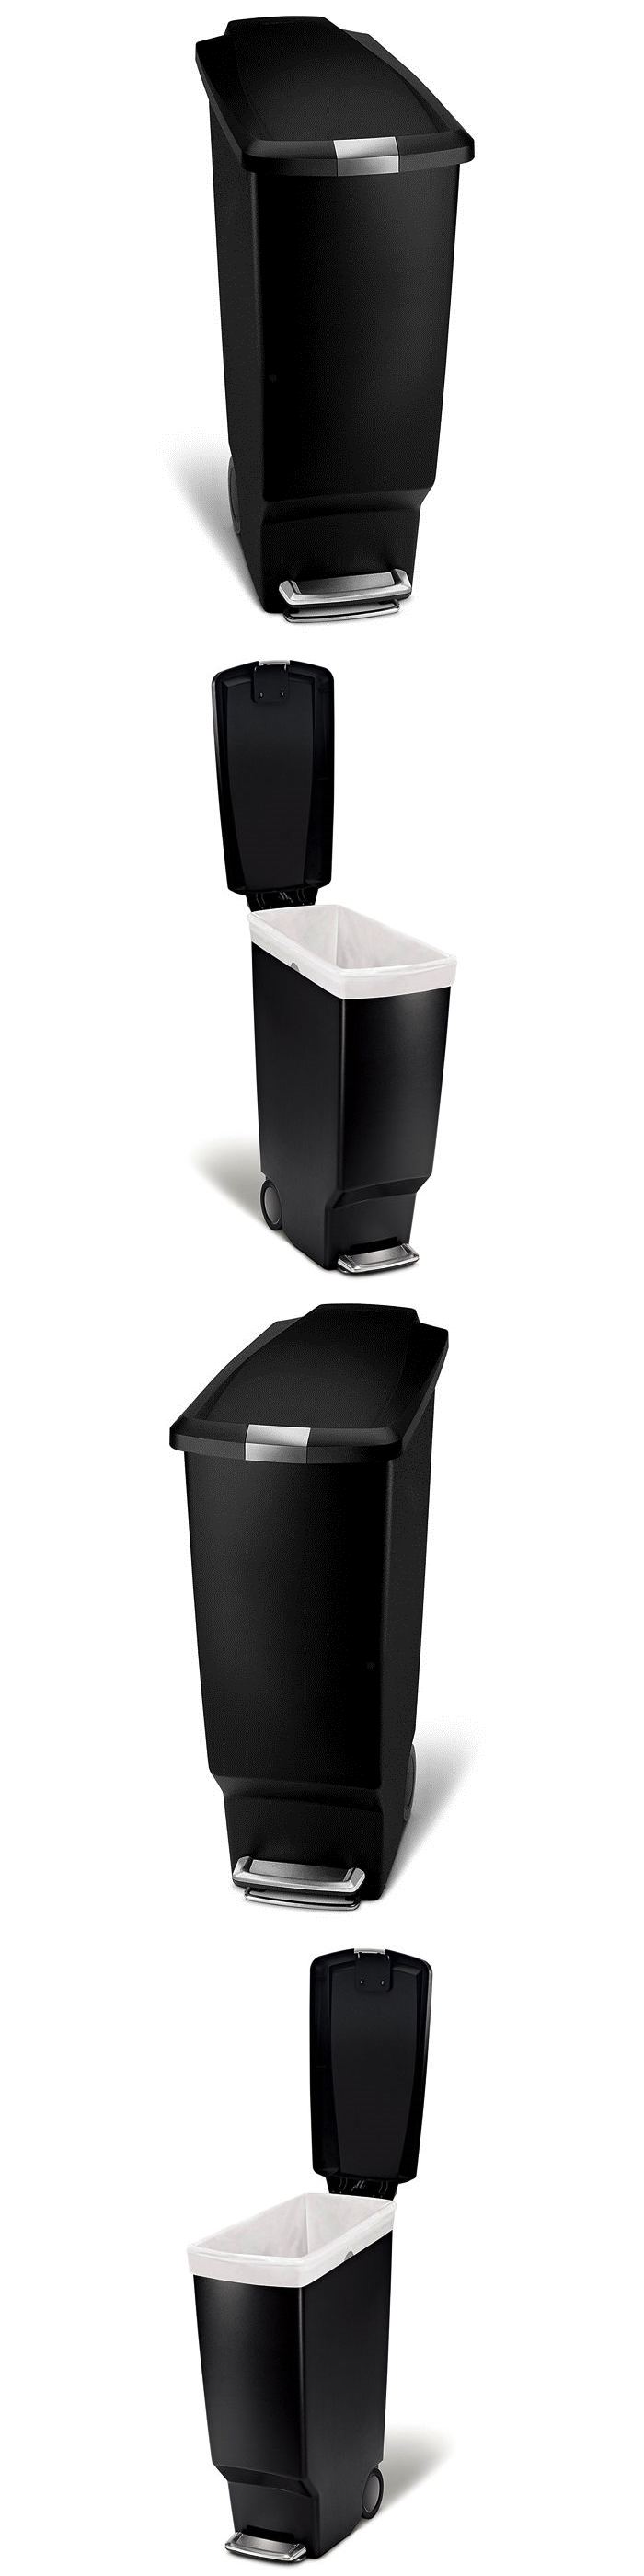 Trash Cans And Wastebaskets Prepossessing Trash Cans And Wastebaskets 20608 Black Step Trash Can Plastic 2018